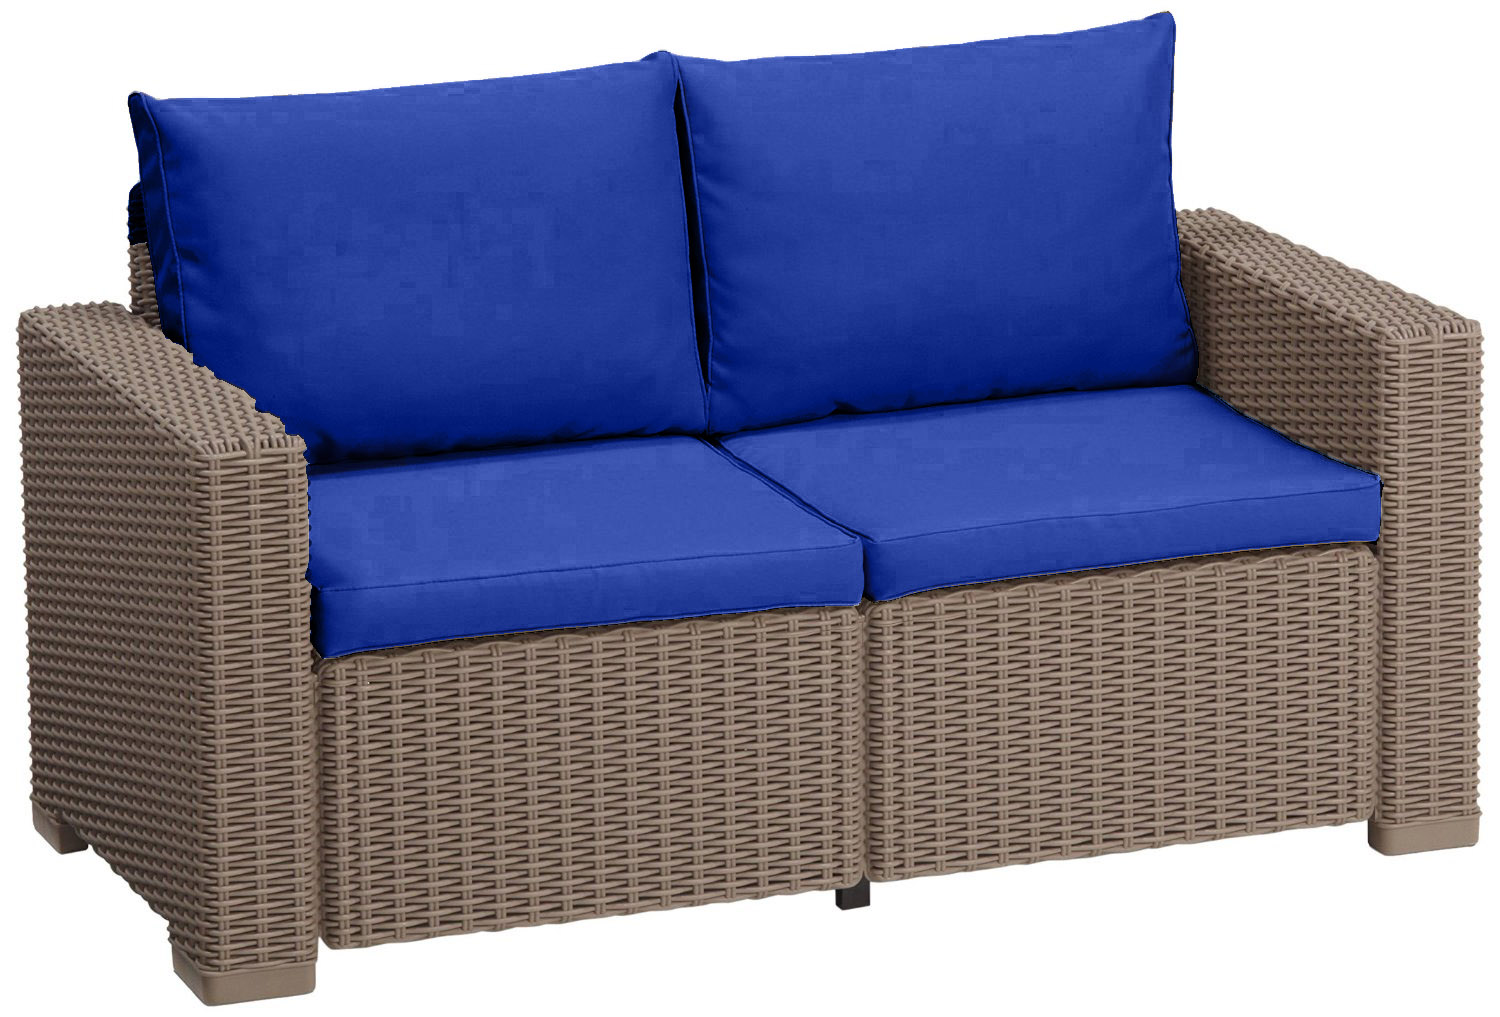 Cushion Pads For Keter Allibert California Rattan Garden